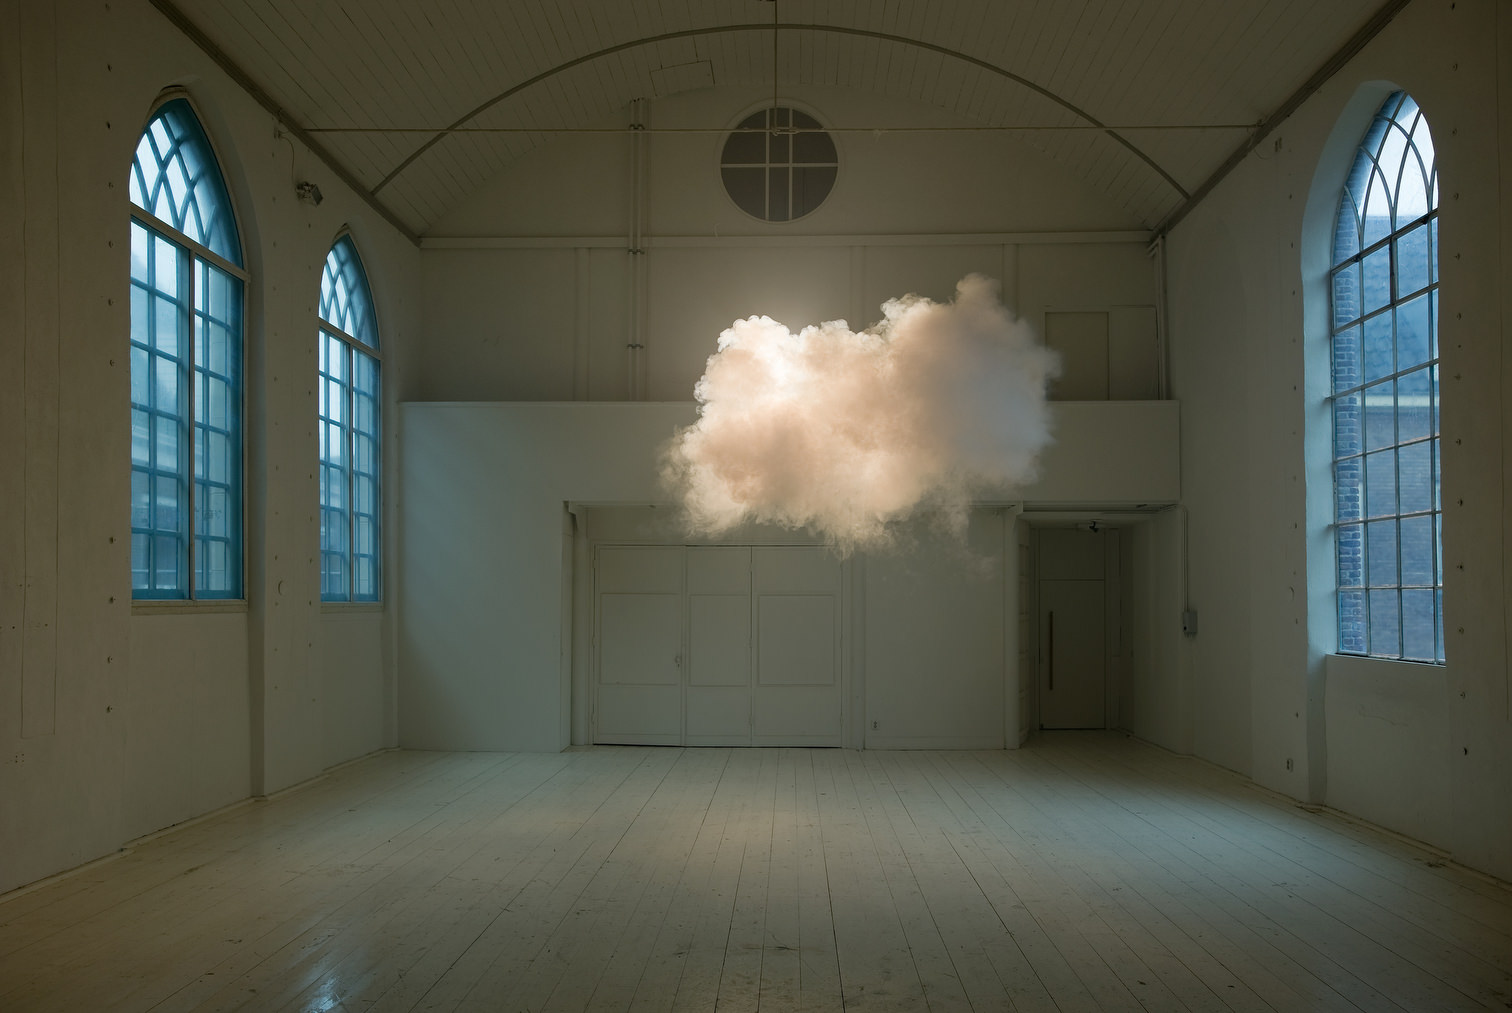 Berndnaut Smilde, Nimbus II, 2012, cloud in room, lambda print on dibond